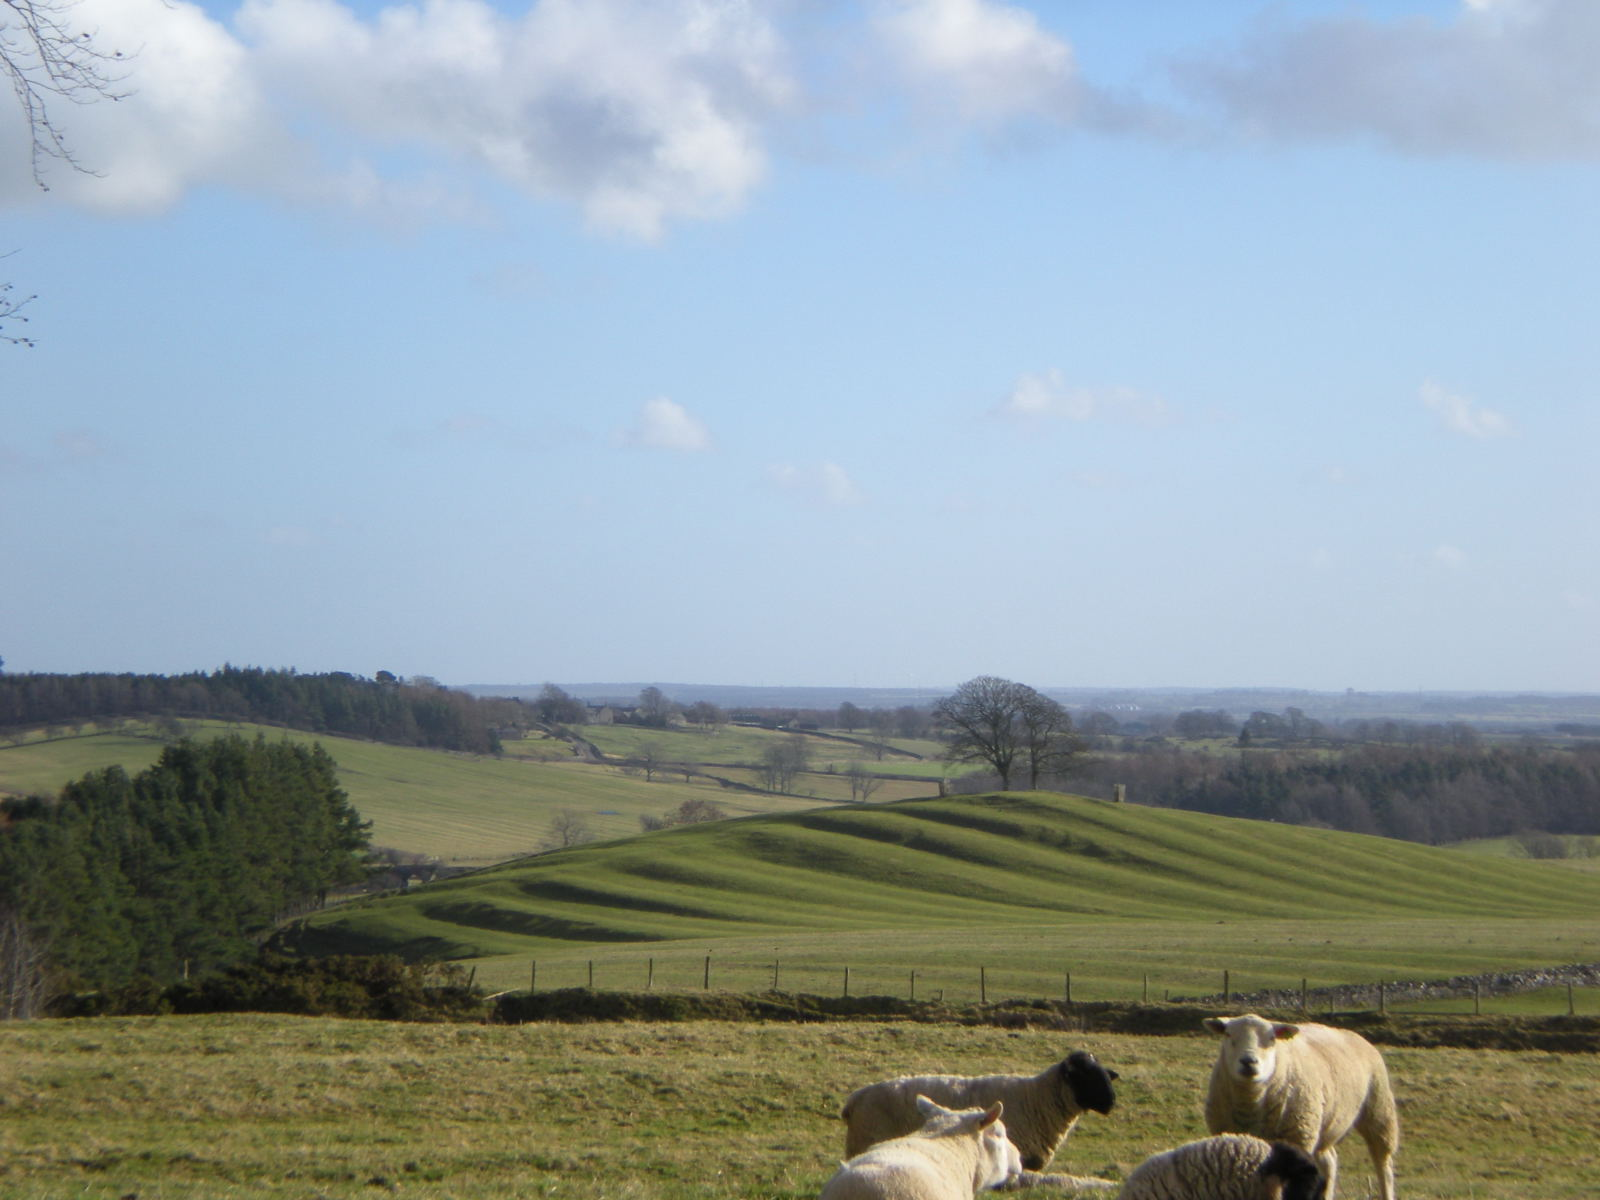 Nick Owen's photograph of the view to Tuthill from the Wallington riding, shows a landscape that is far from cut off.